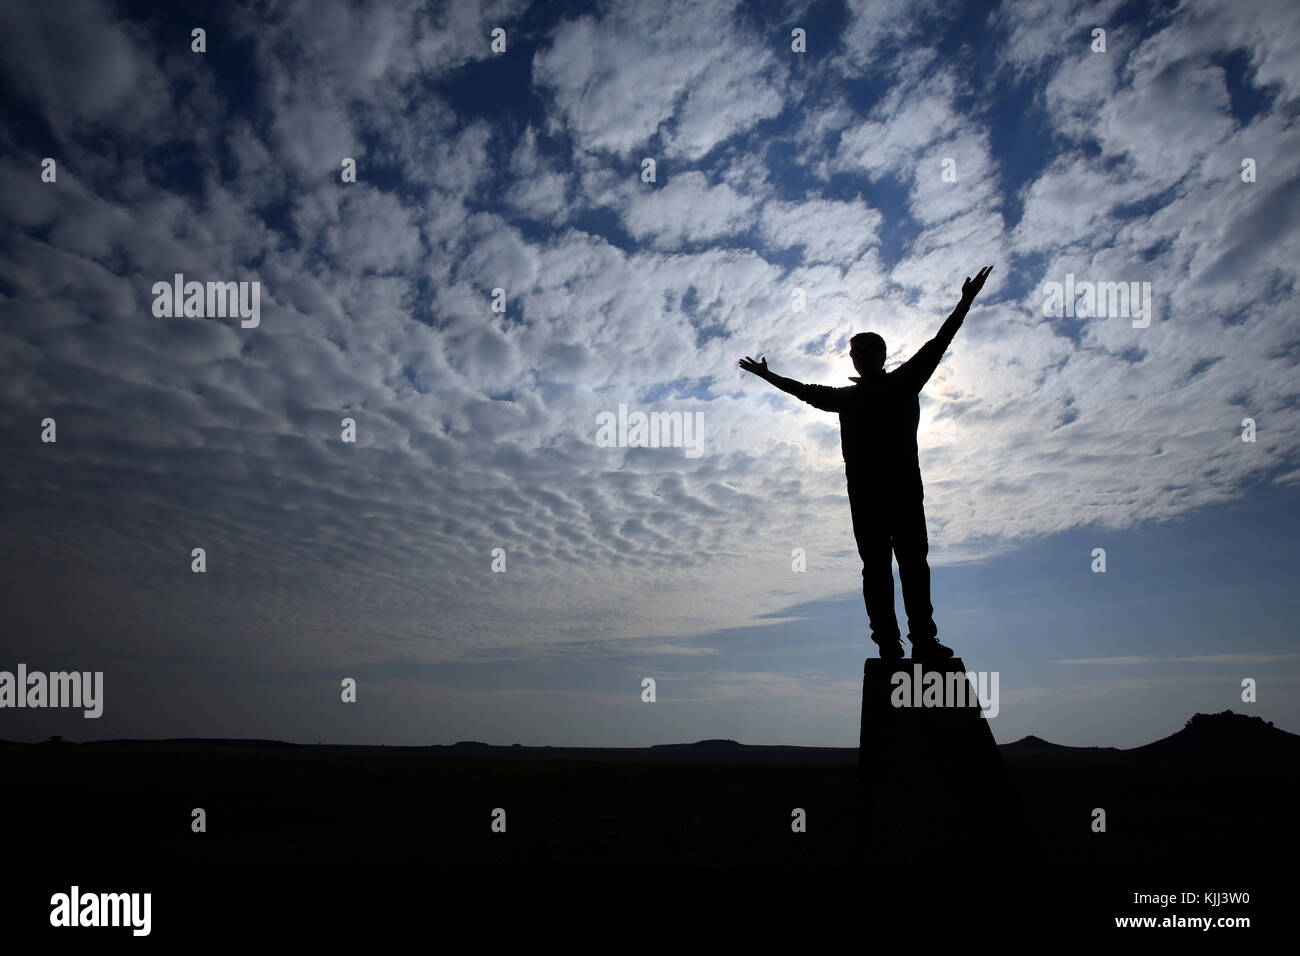 Man with arms raised praying against cloudy sky. Silhouette. - Stock Image